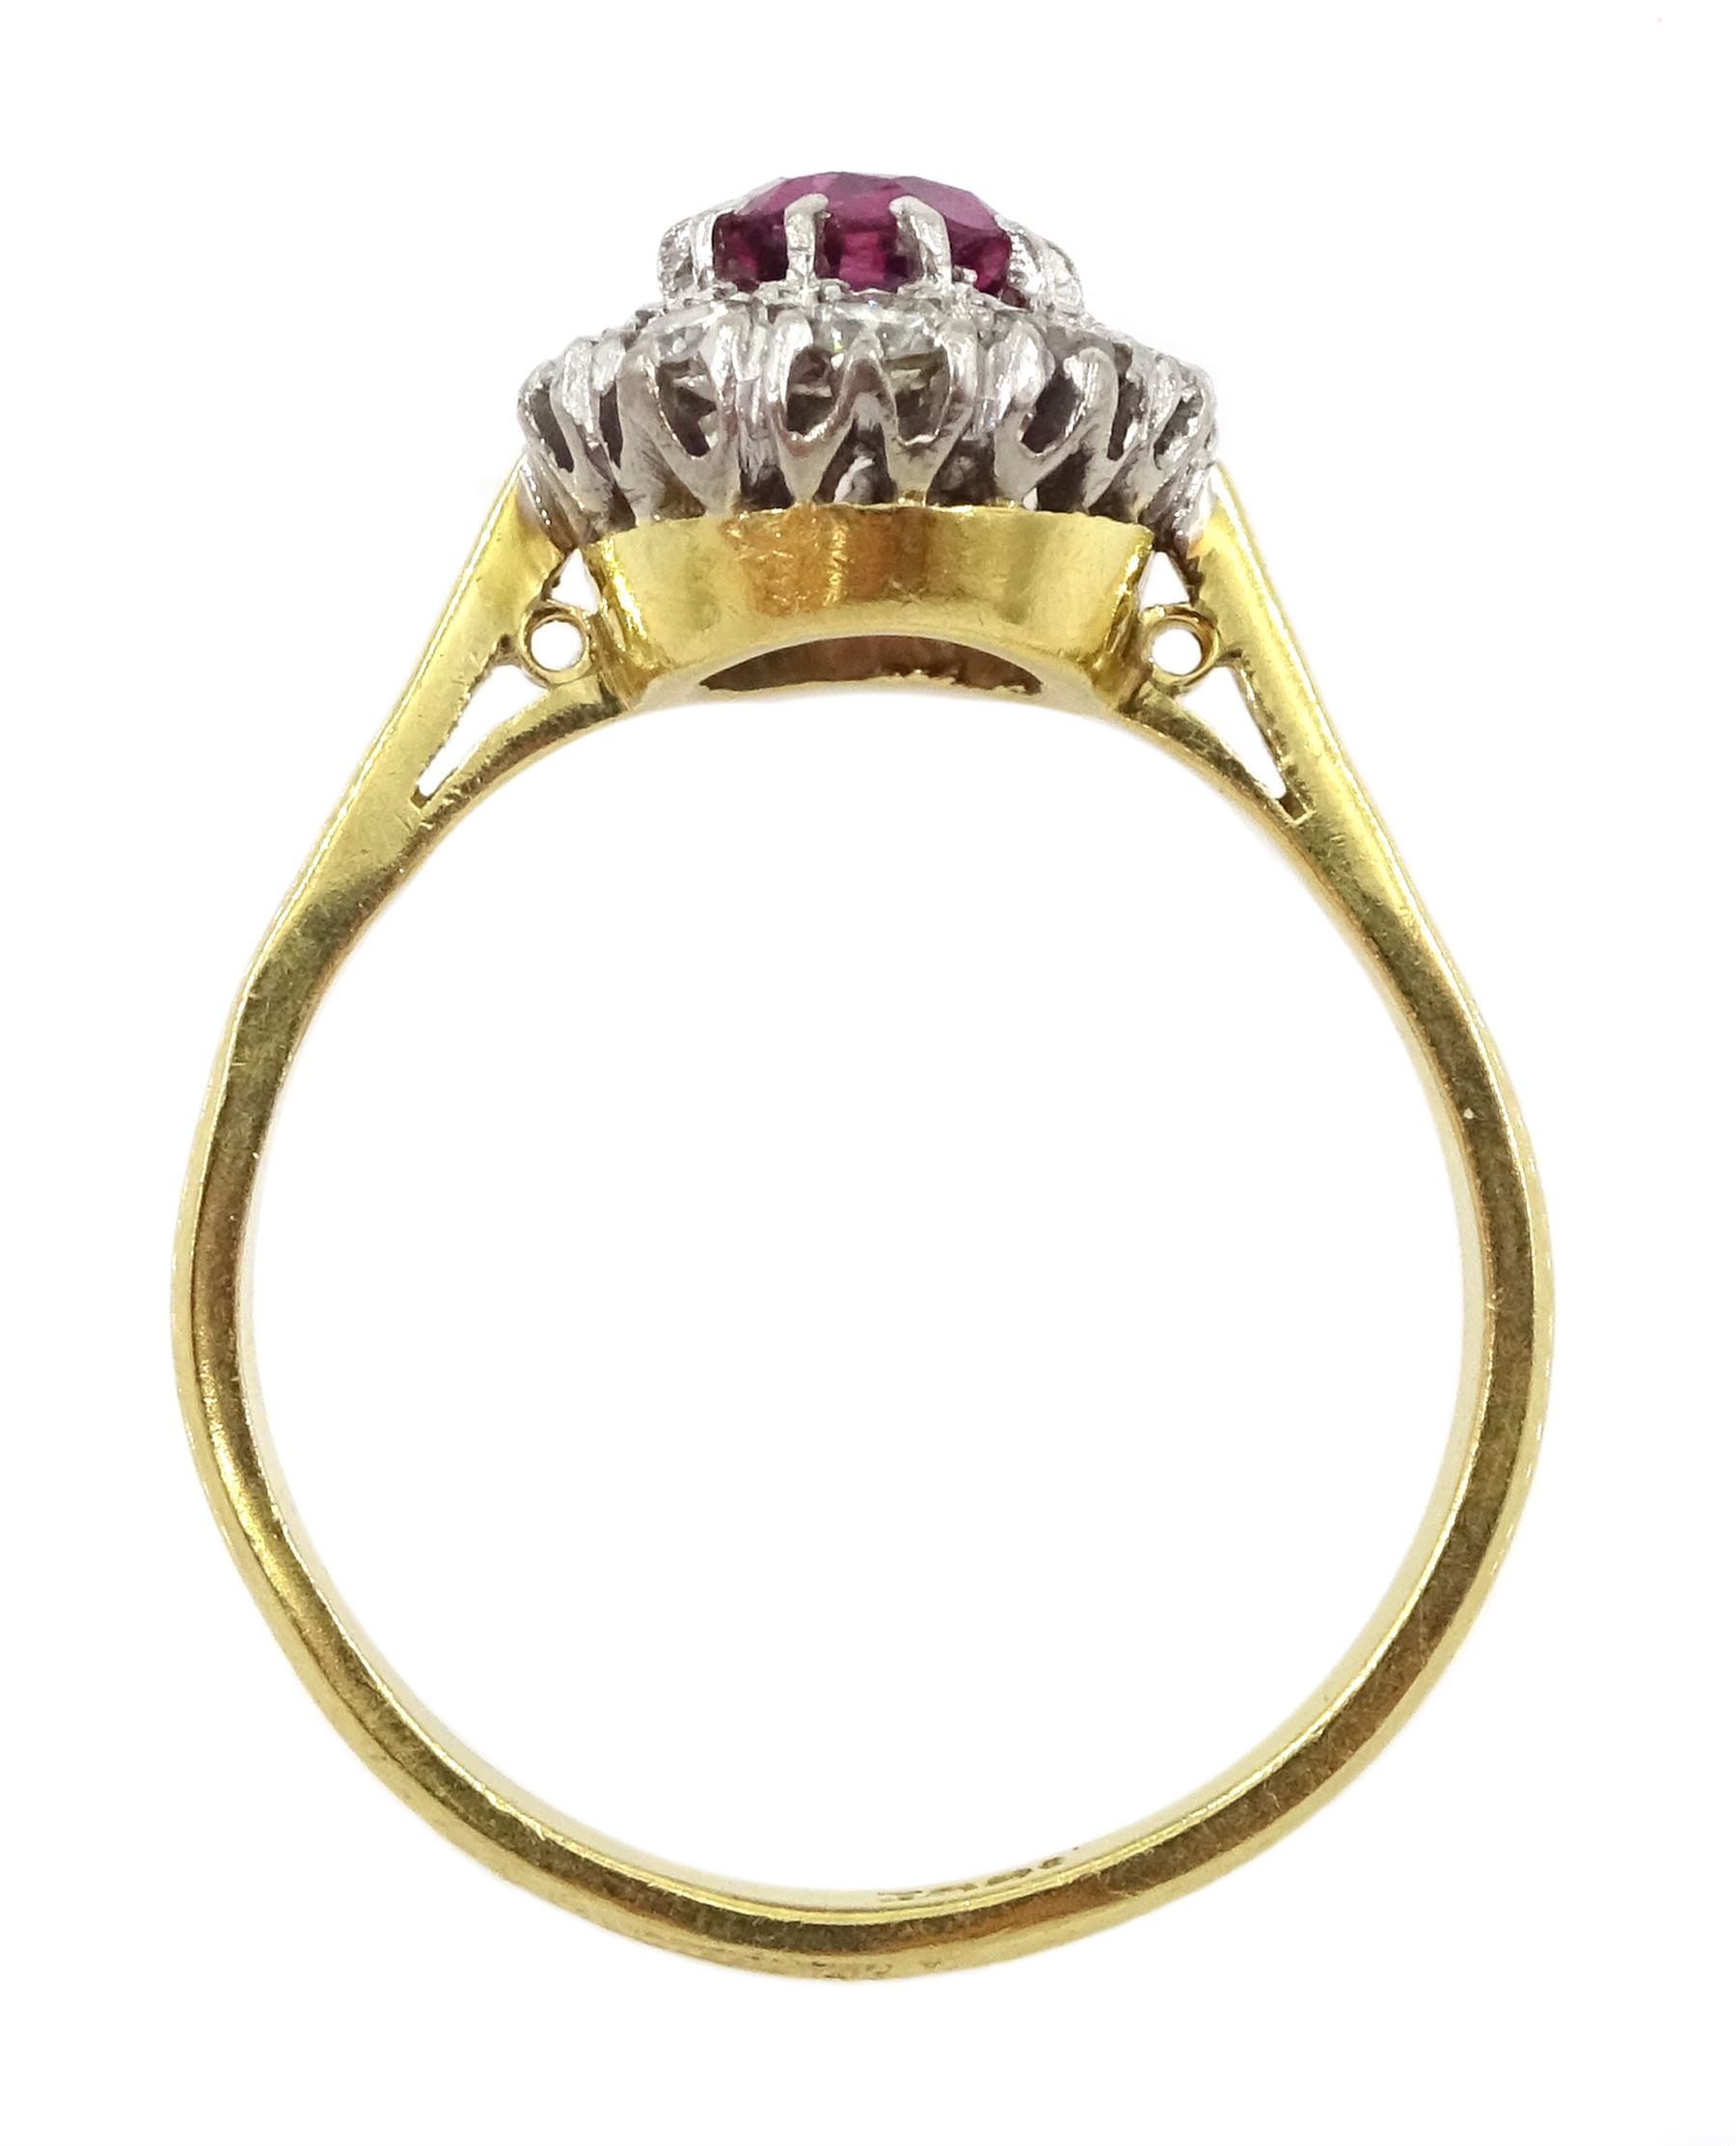 Gold oval ruby and diamond cluster ring - Image 4 of 4